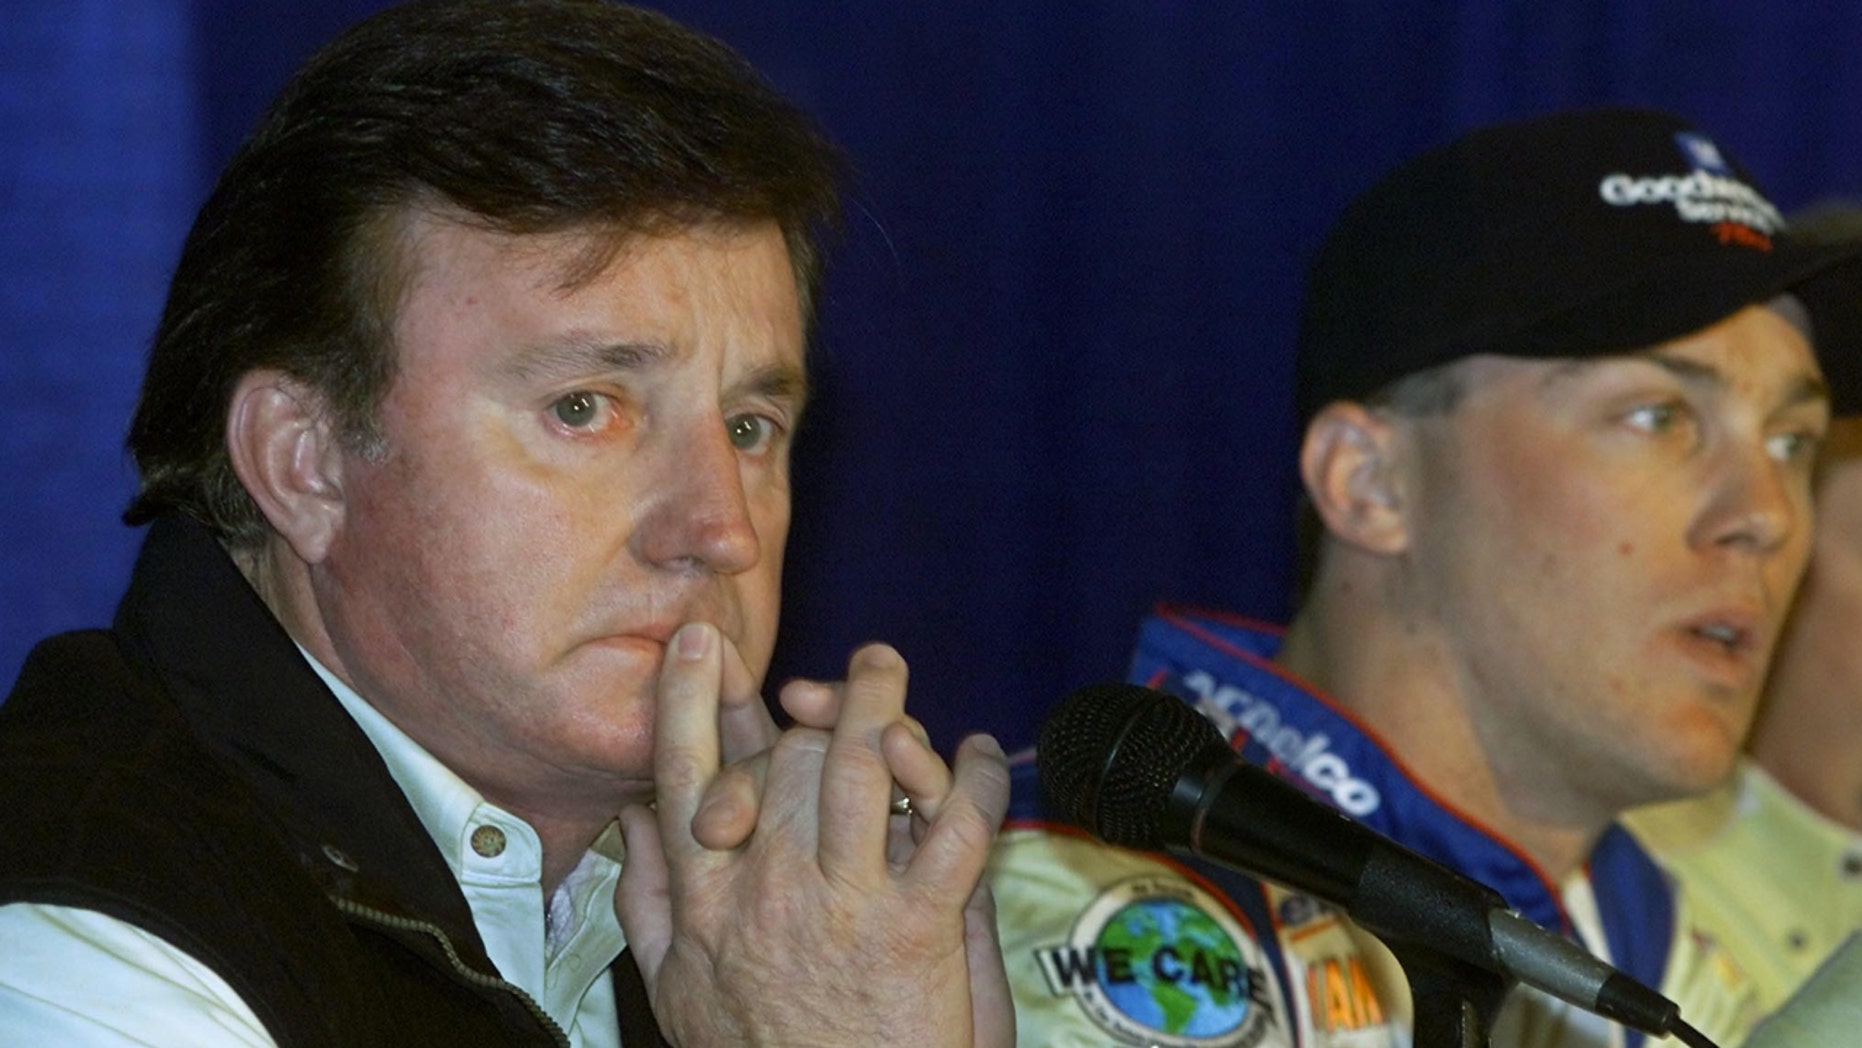 Richard Childress, left, answers questions during a news conference in North Carolina, Feb. 23, 2001. He shot at three intruders at his North Carolina home, authorities said Wednesday.